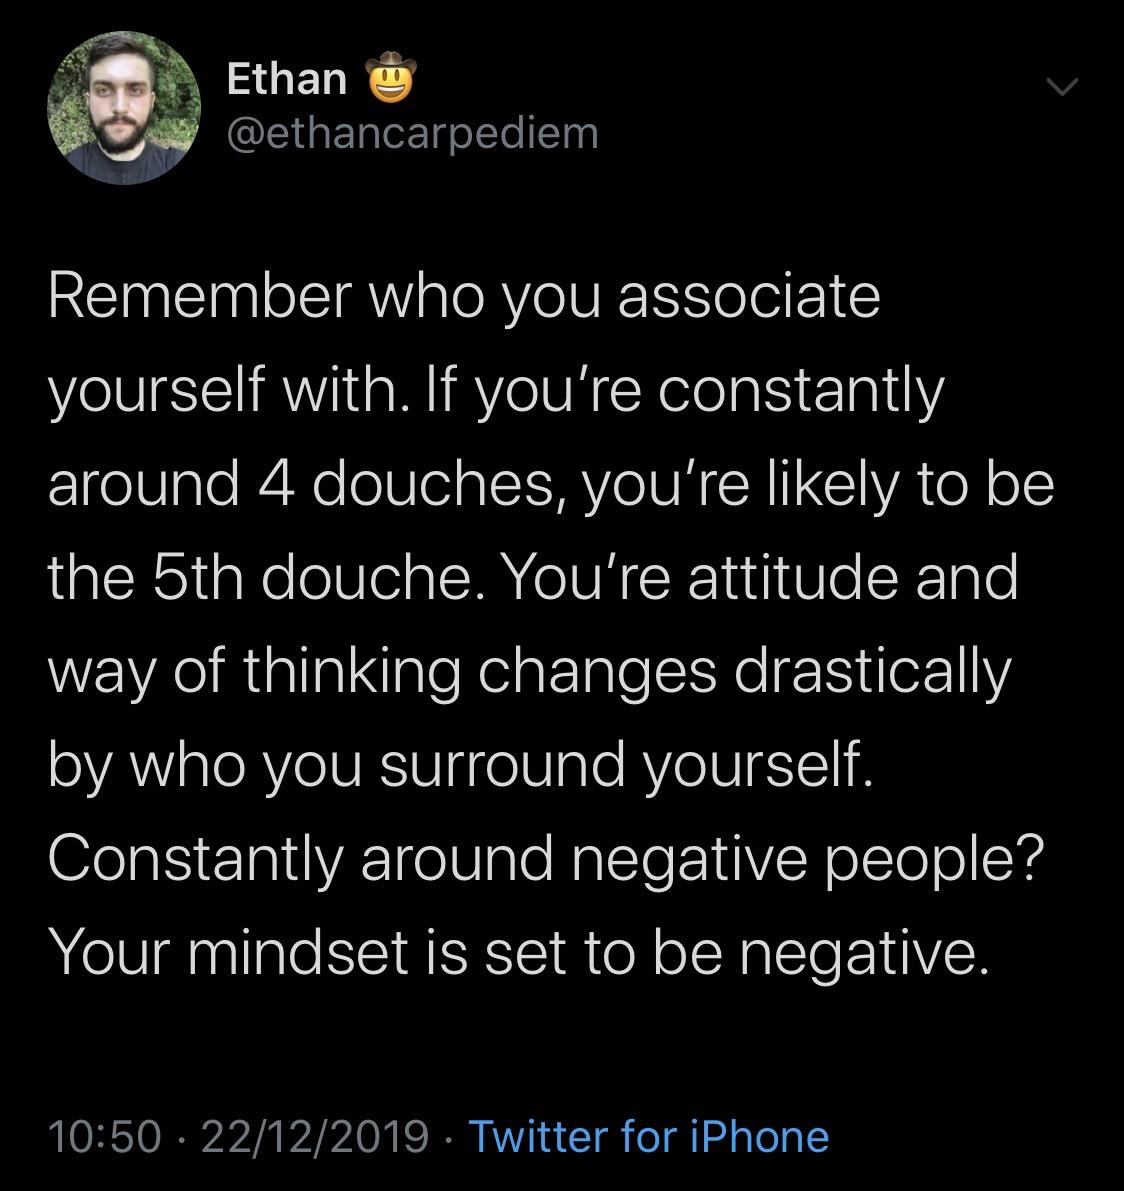 [Image] Surround yourself with positive people